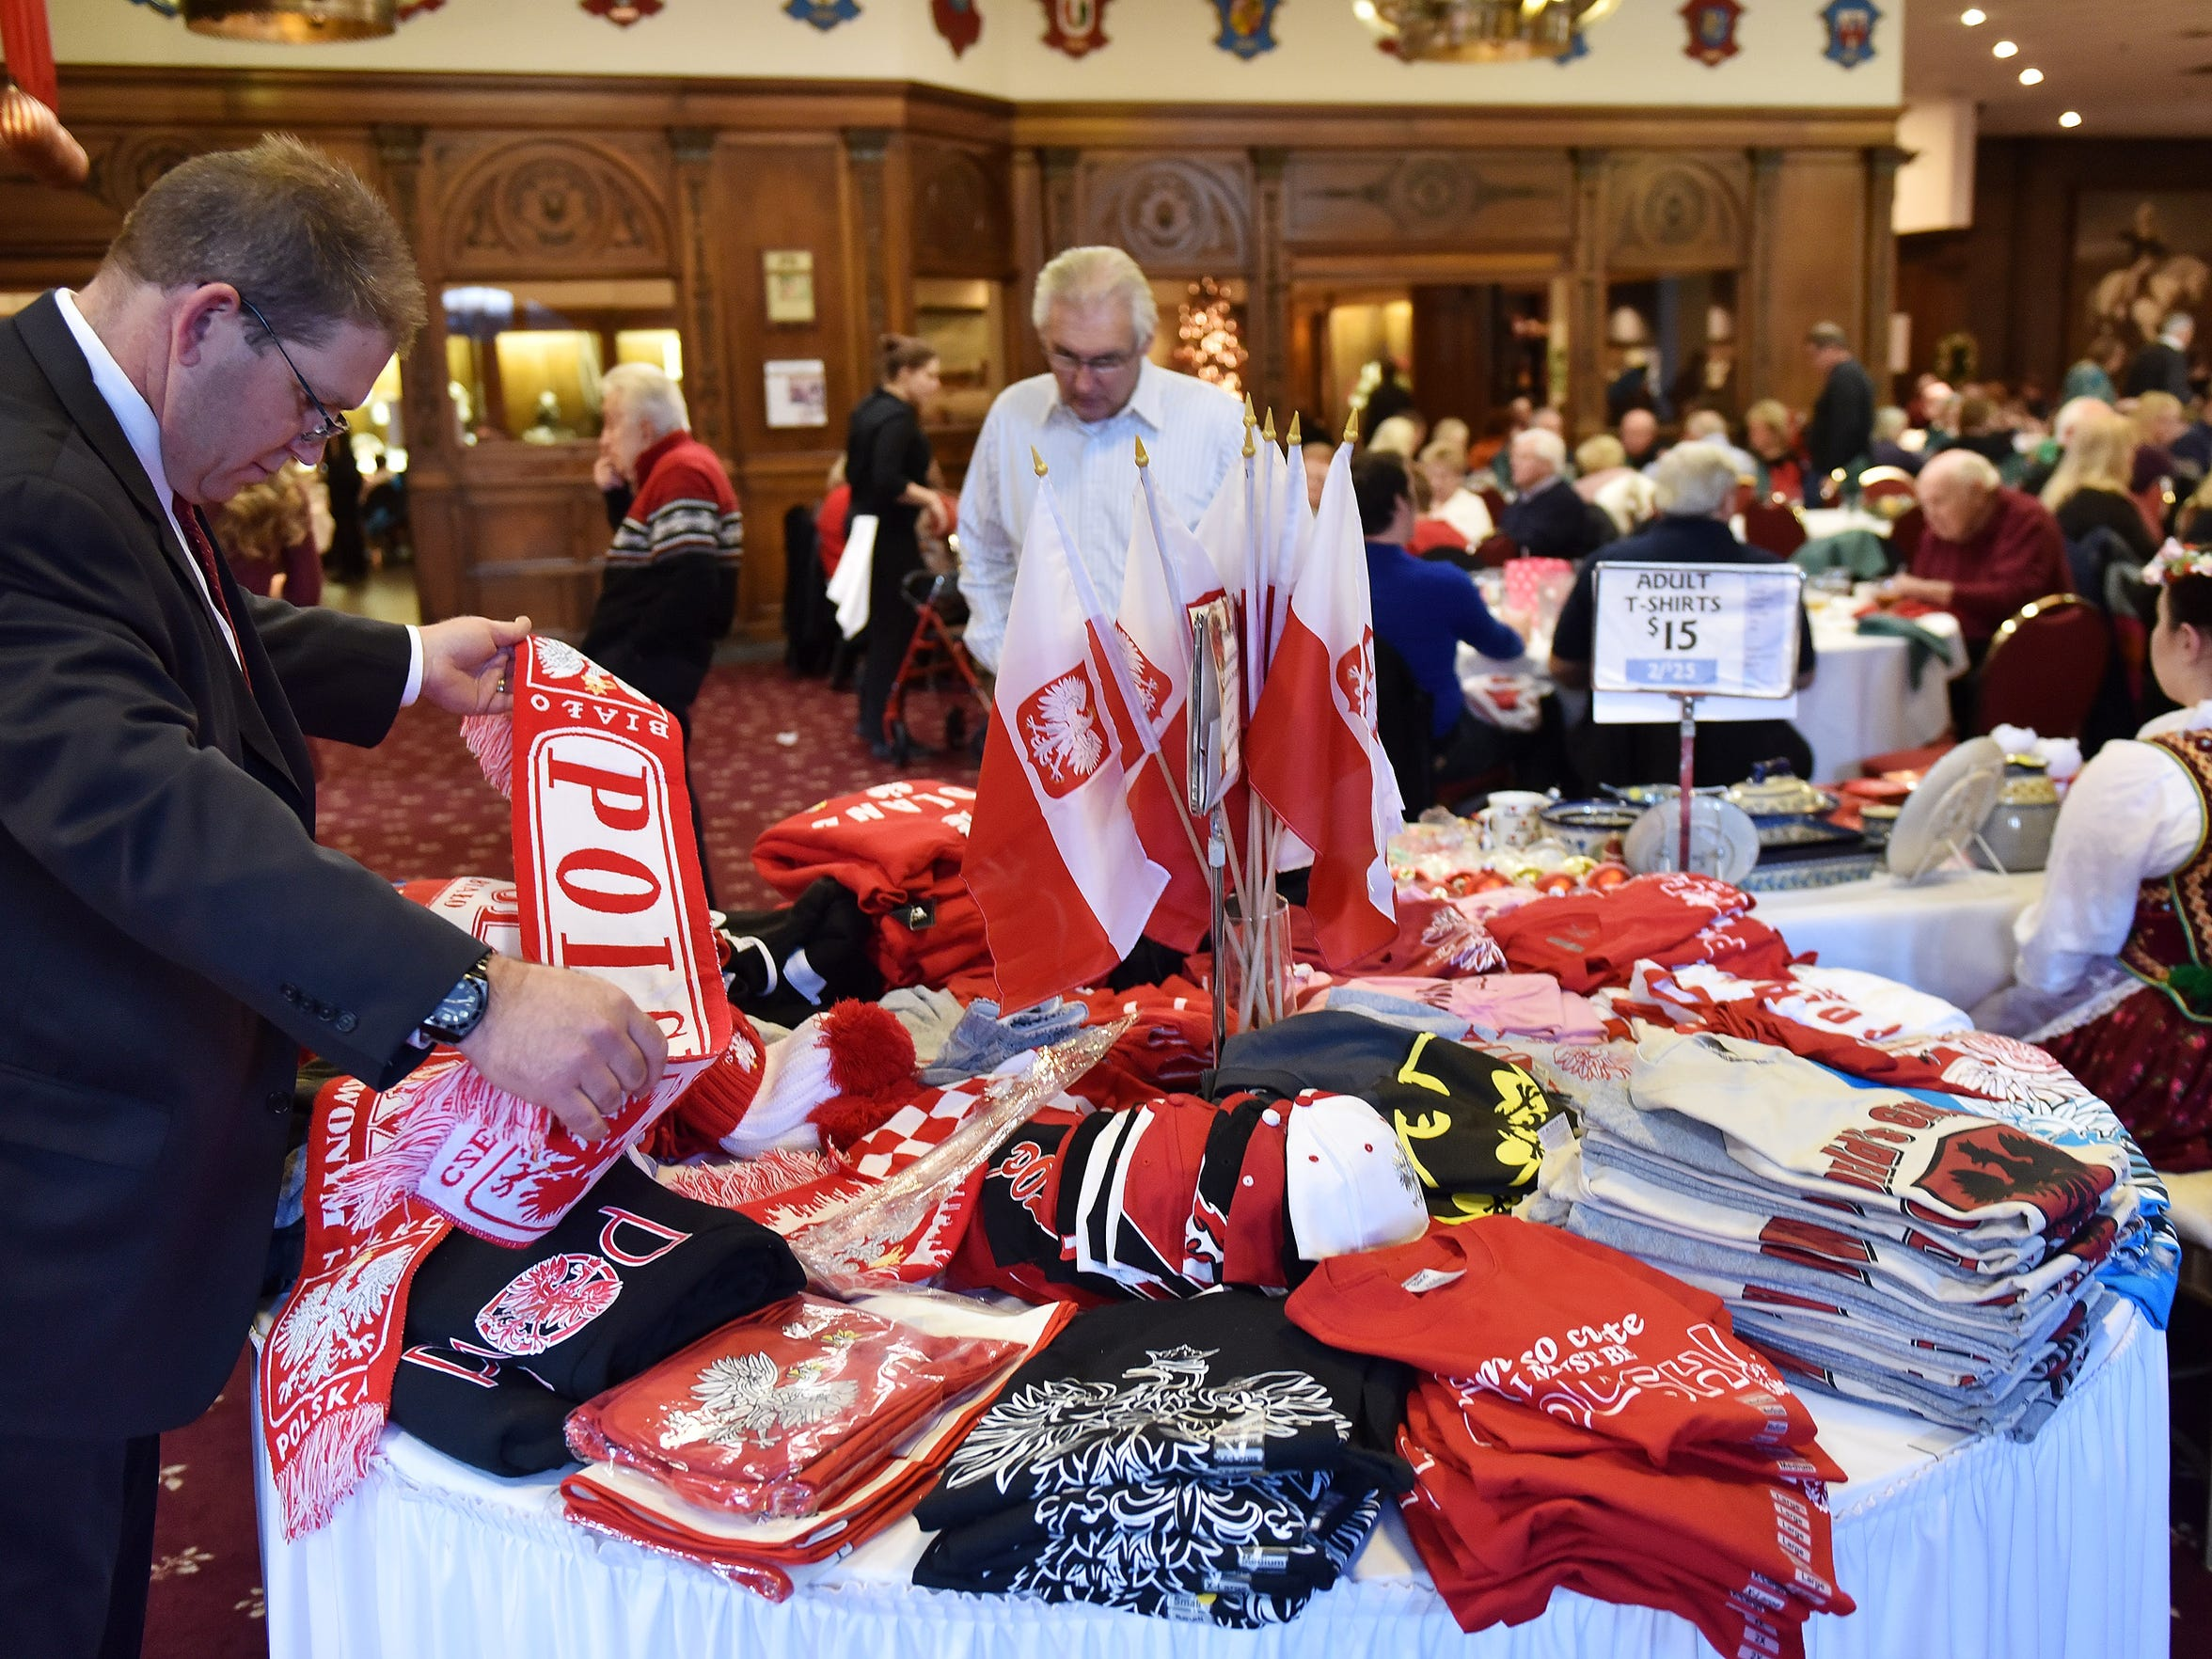 Geoff Kowalczyk of Sterling Heights looks at Polish scarves at a Polish American Cultural Center buffet.